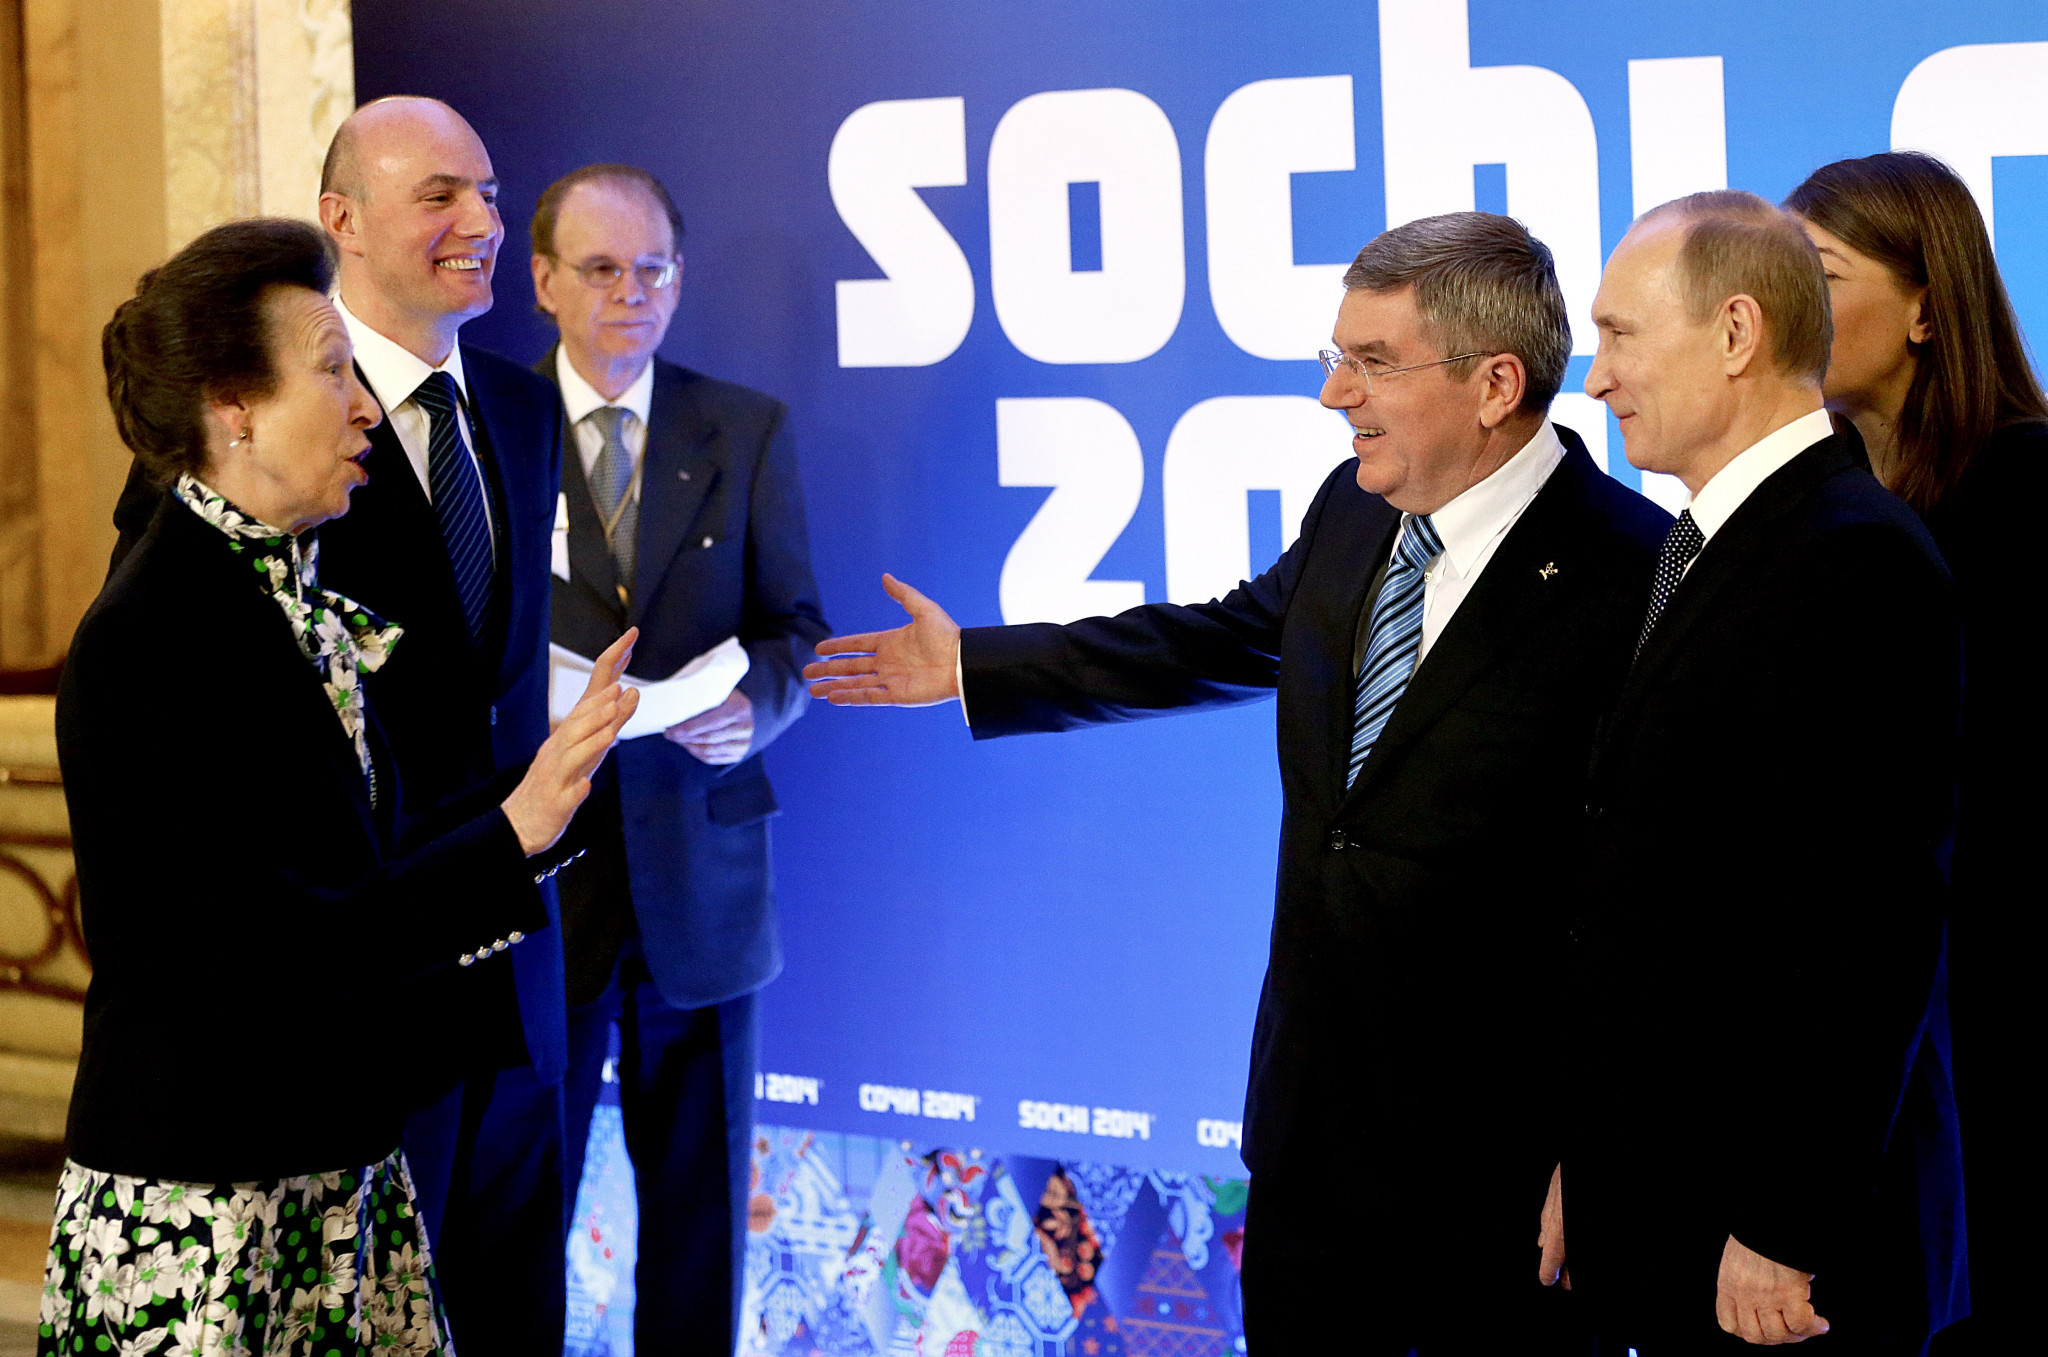 Thomas Bach, Vladimir Putin and Sochi 2014 President Dmitry Chernyshenko, centre left, all pictured together, along with British IOC member Princess Anne, at Sochi 2014 ©Getty Images